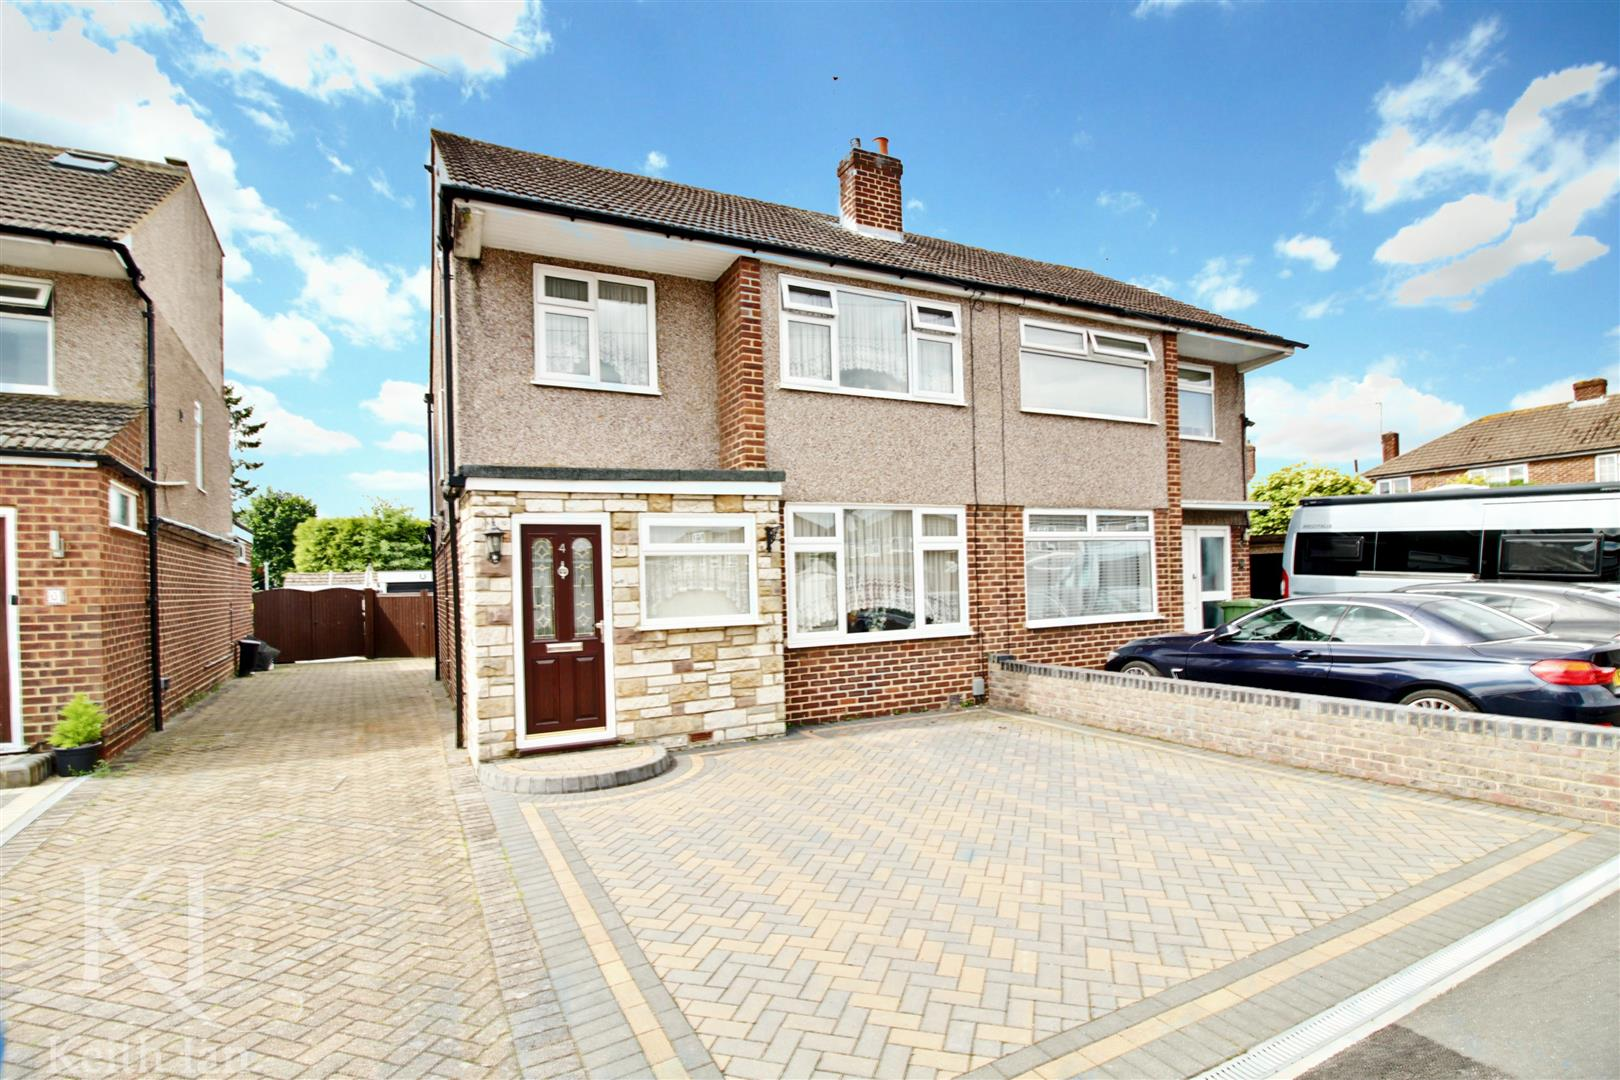 Hartland Road, Cheshunt - A Beautifully Extended 3 Bedroom Semi Detached Family Home